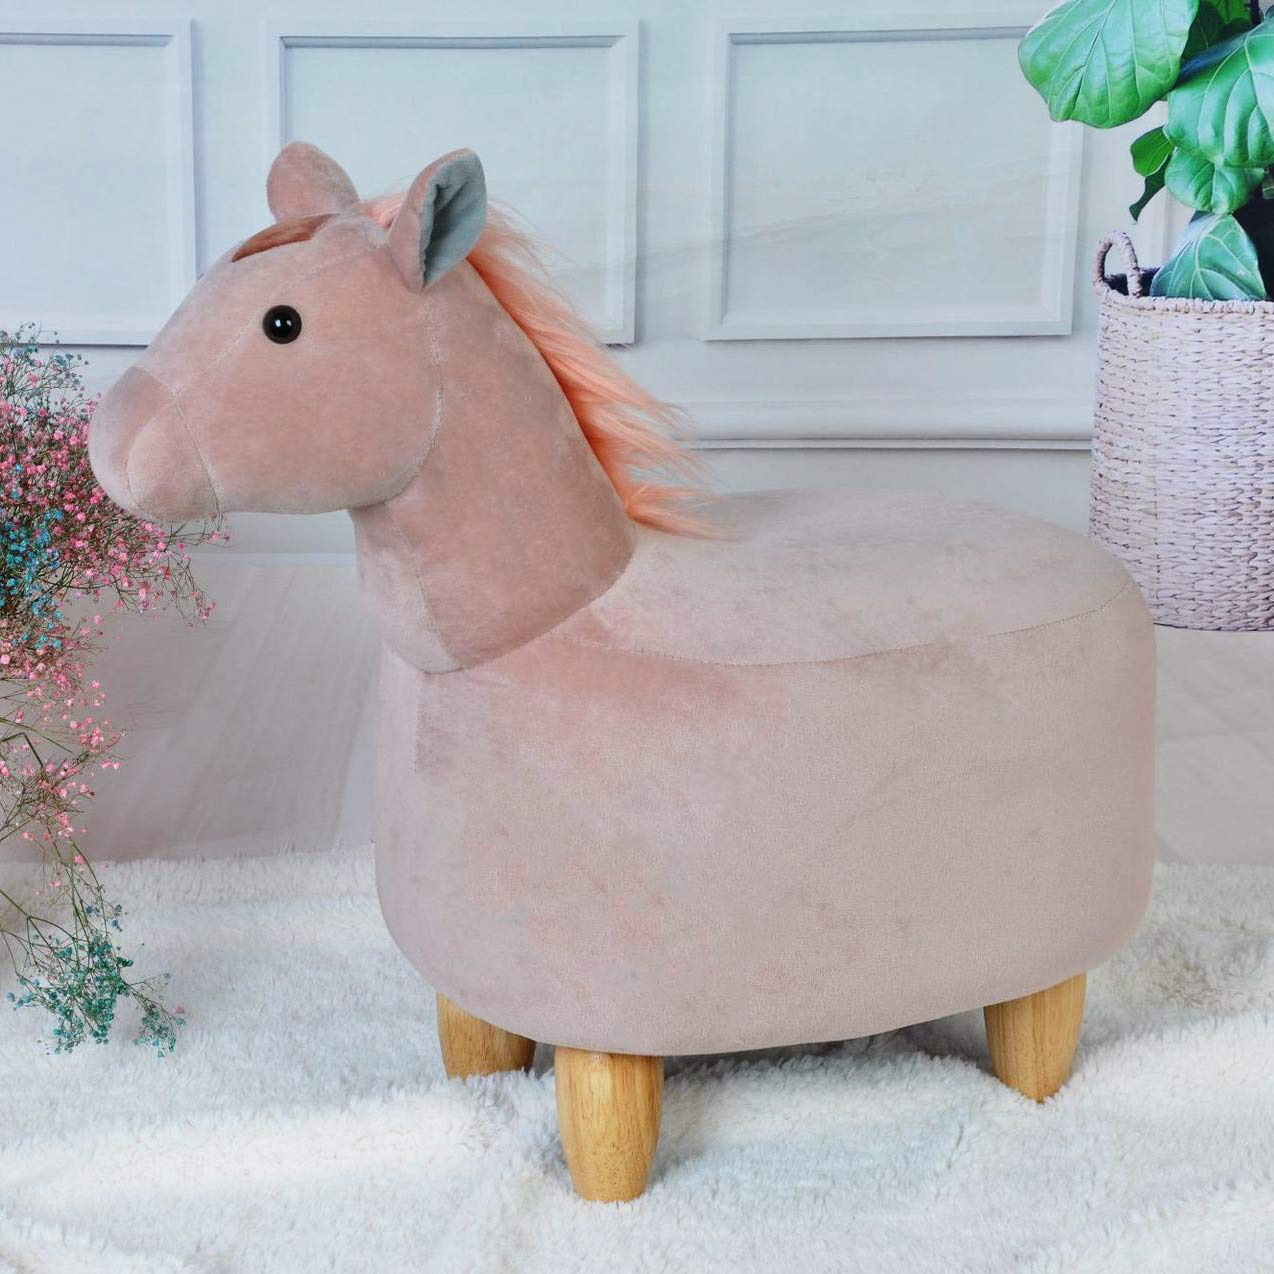 Gift for Children and Adults Soft Plush Ride on Seat JOYBASE Washable Animal Ottoman Kids Footrest Stool Bear